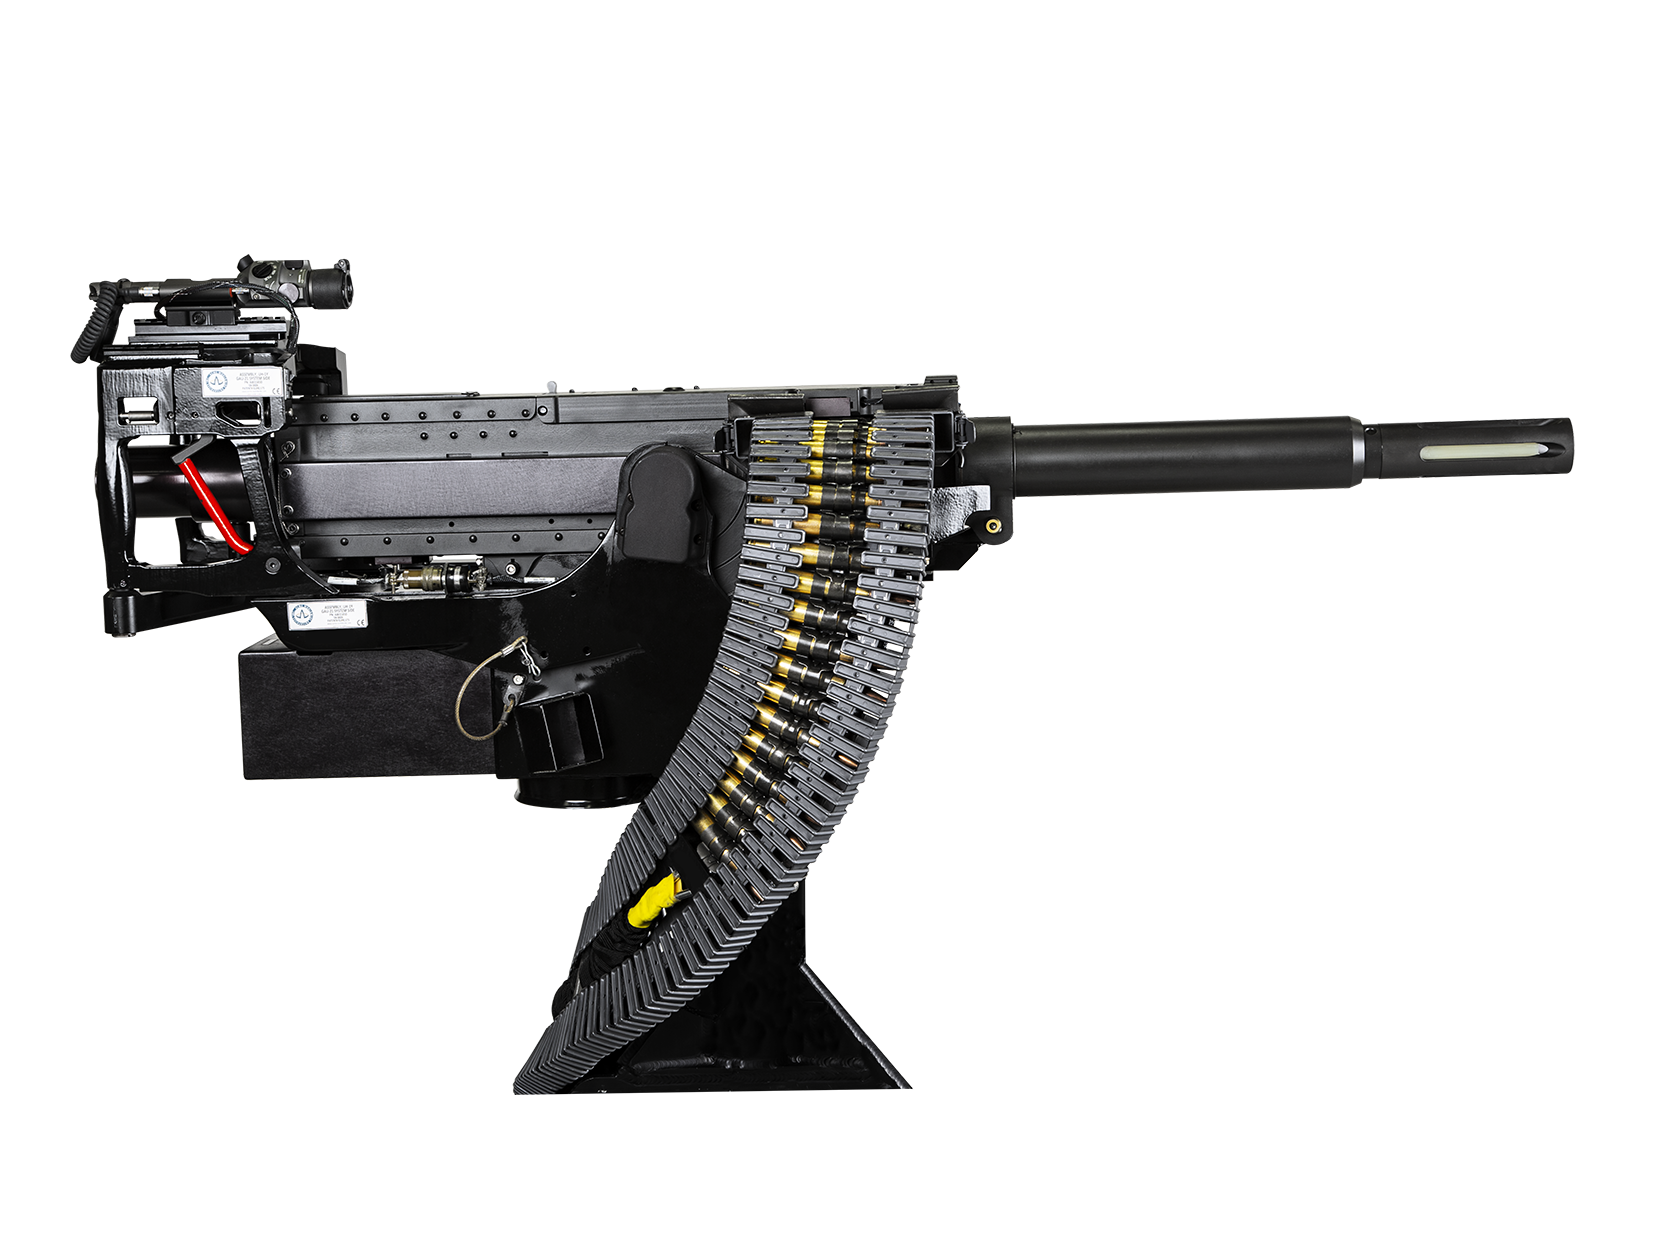 GAU-21 Machine Gun | ACME Worldwide